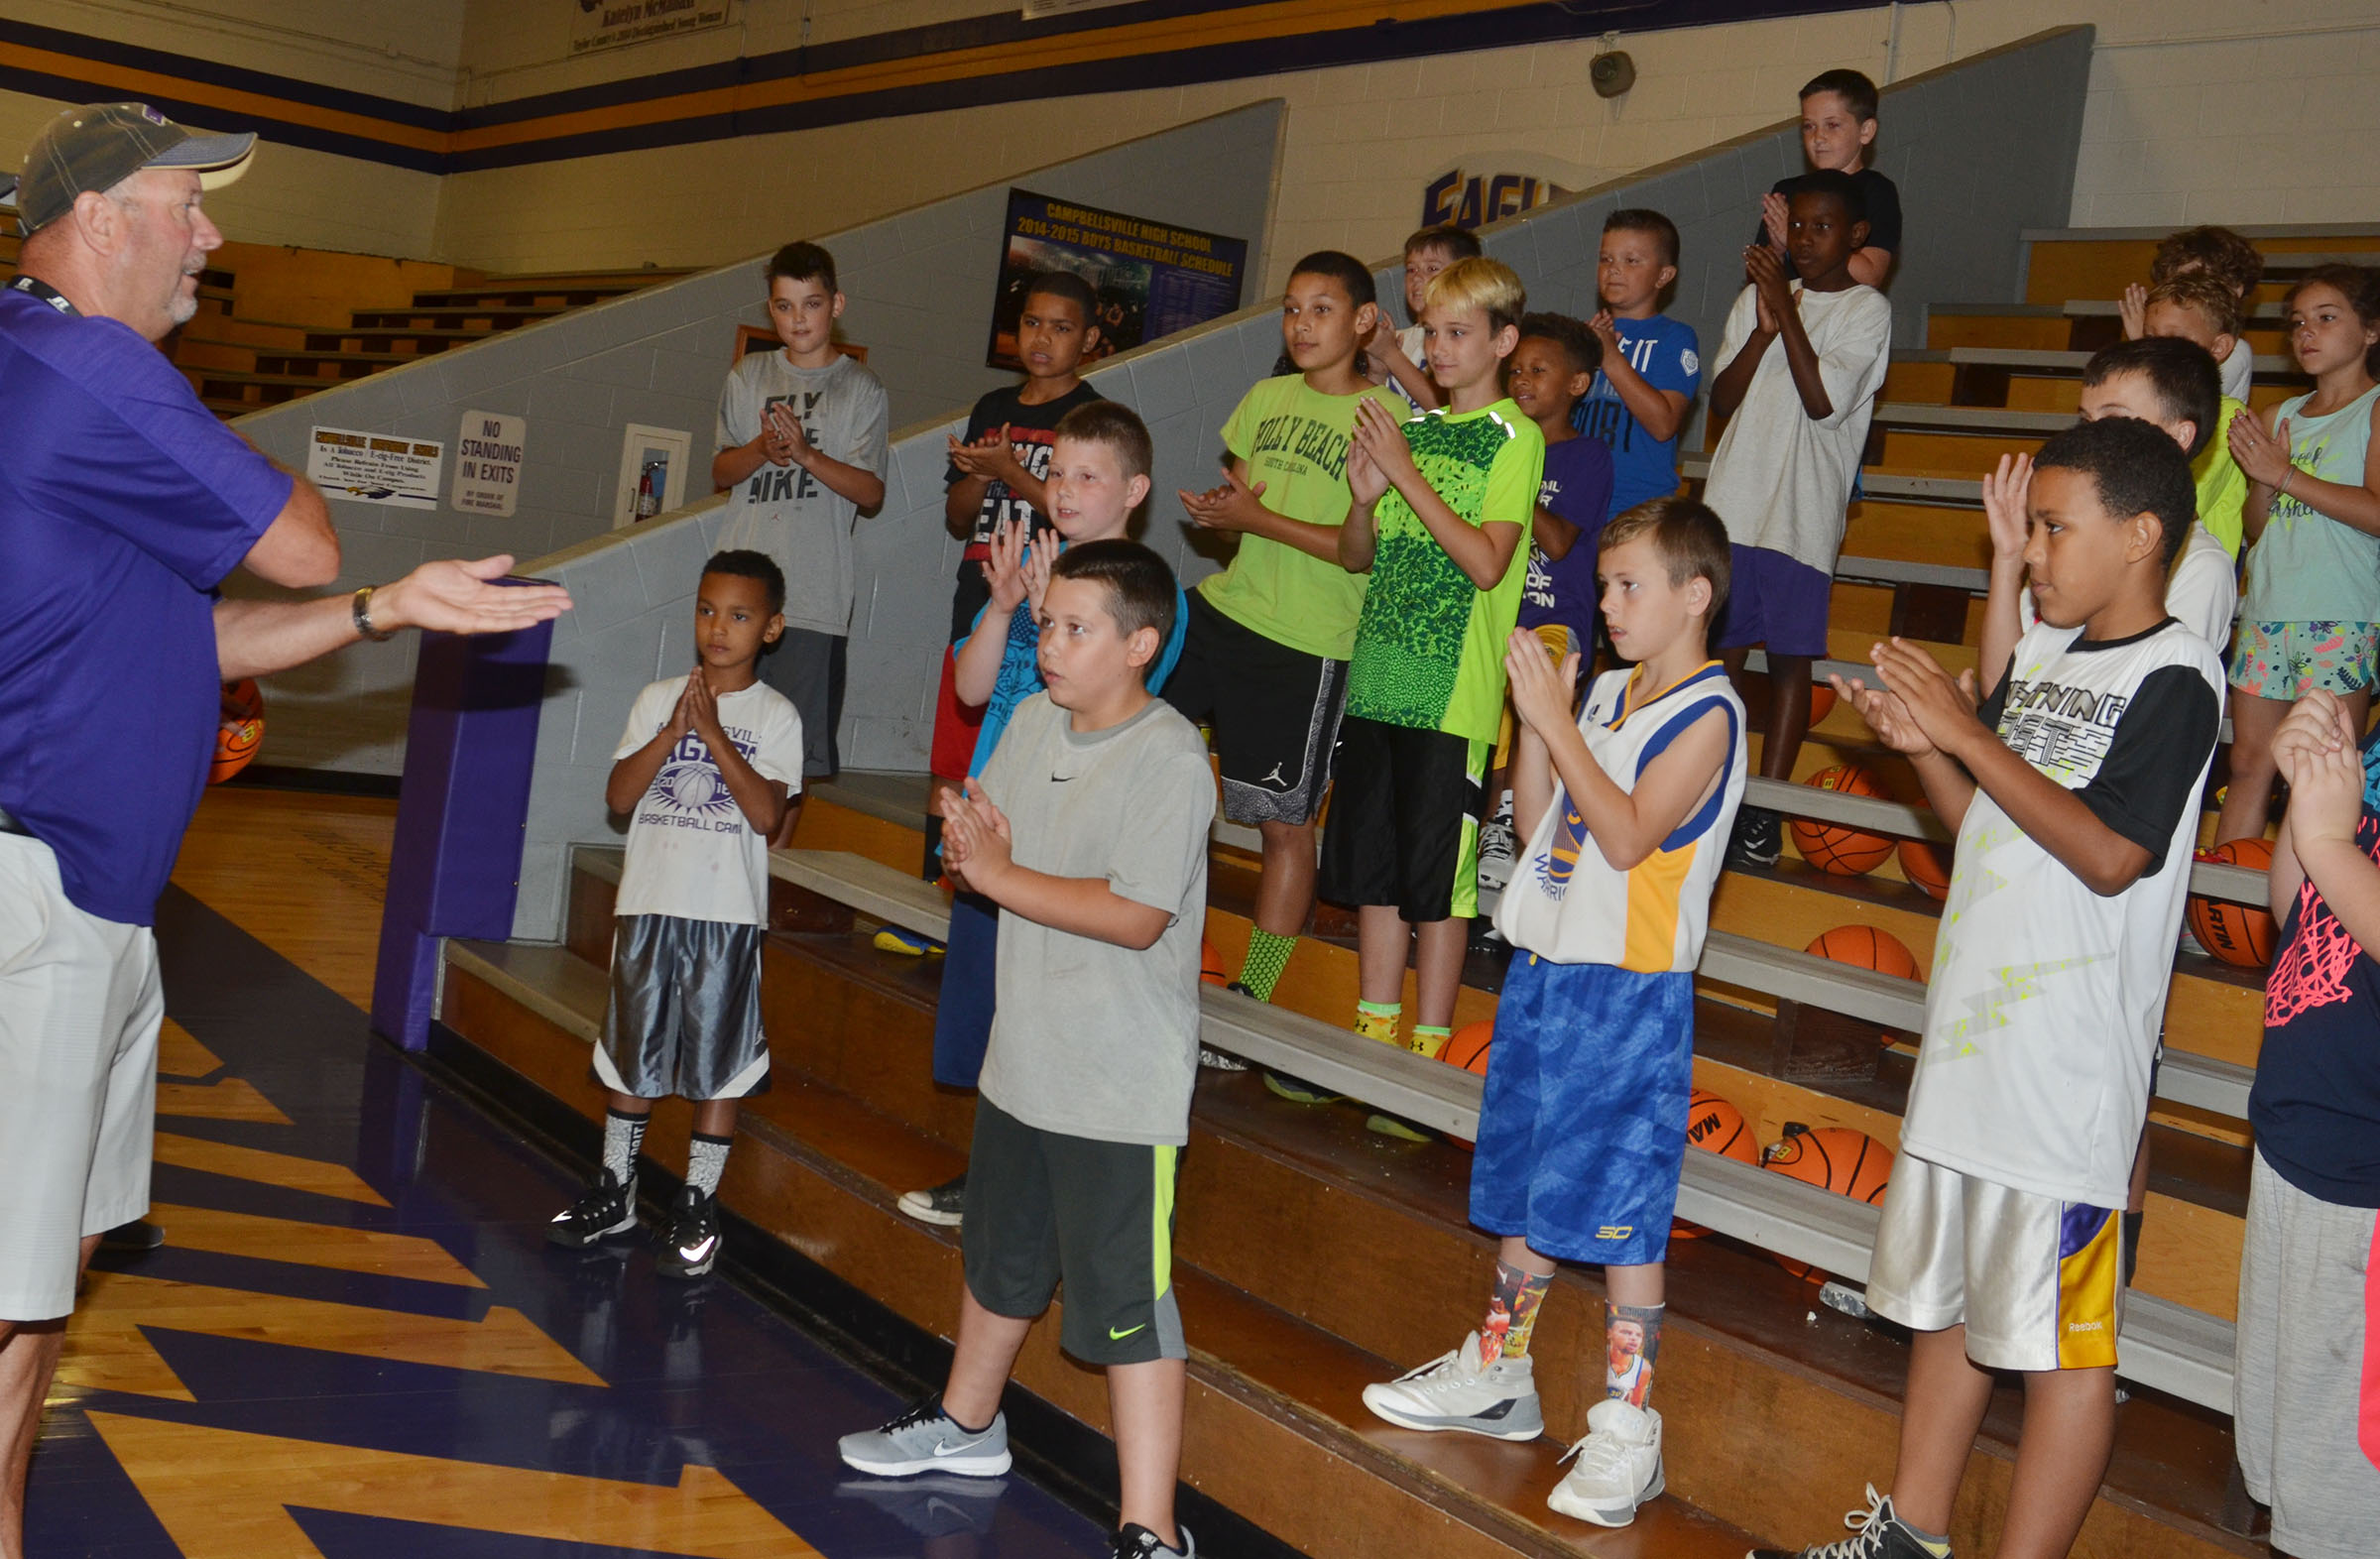 CHS boys' head basketball coach Tim Davis plays a hand-eye coordination game with the campers.